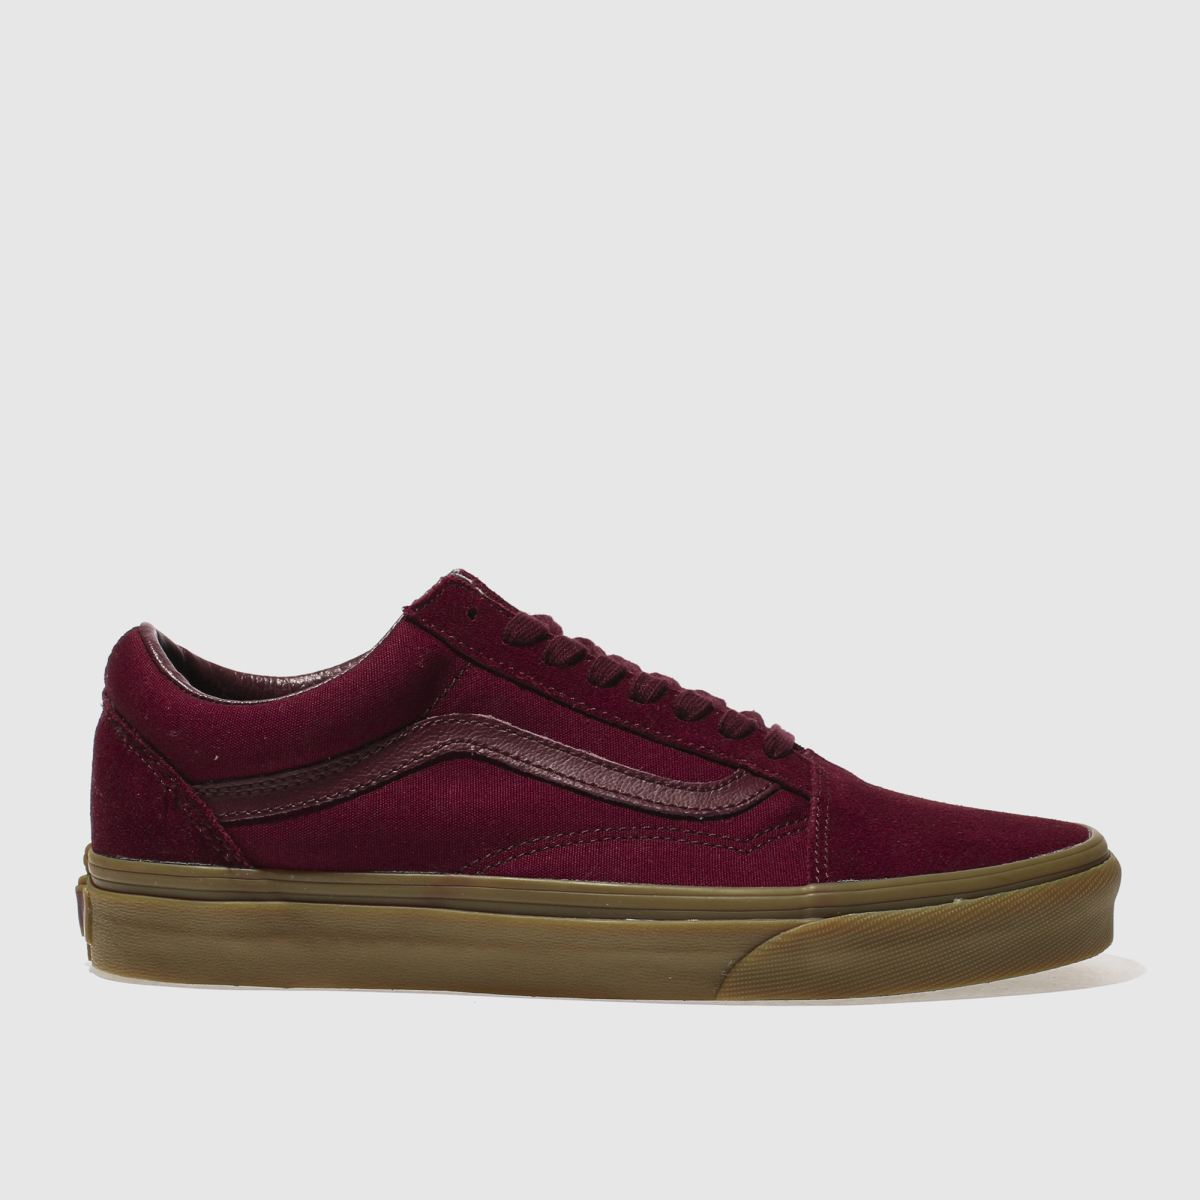 vans burgundy old skool light gum trainers